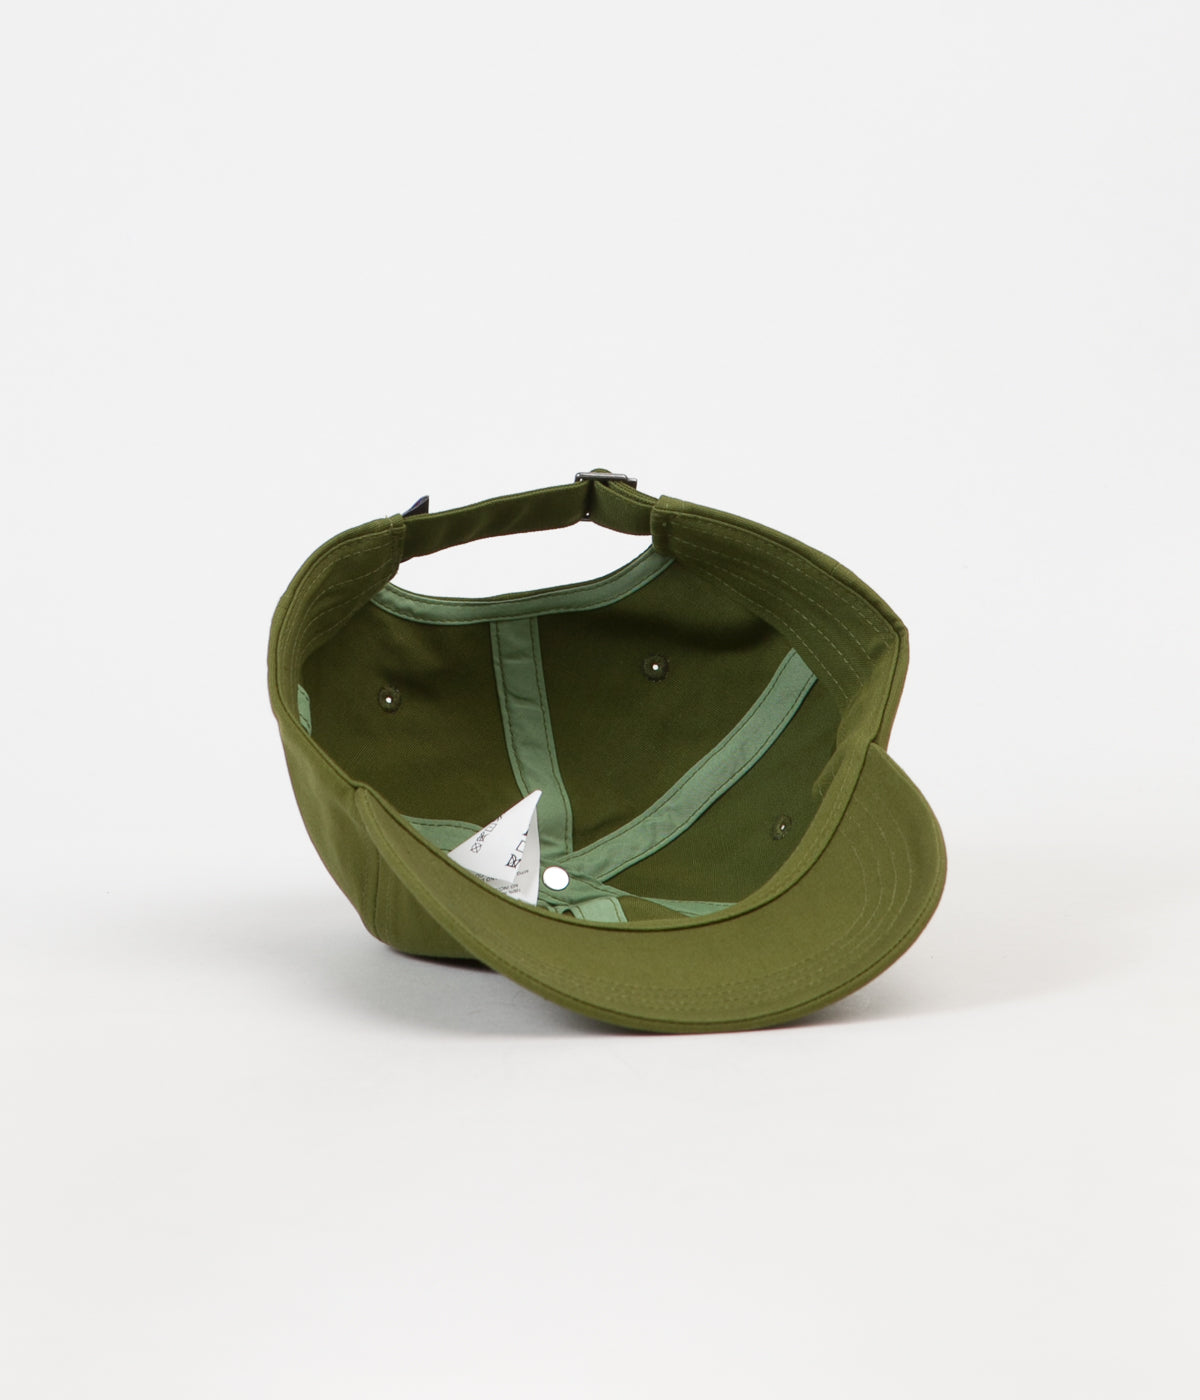 Patagonia Tide Ride Trad Cap - Sprouted Green ... c80e71fef81